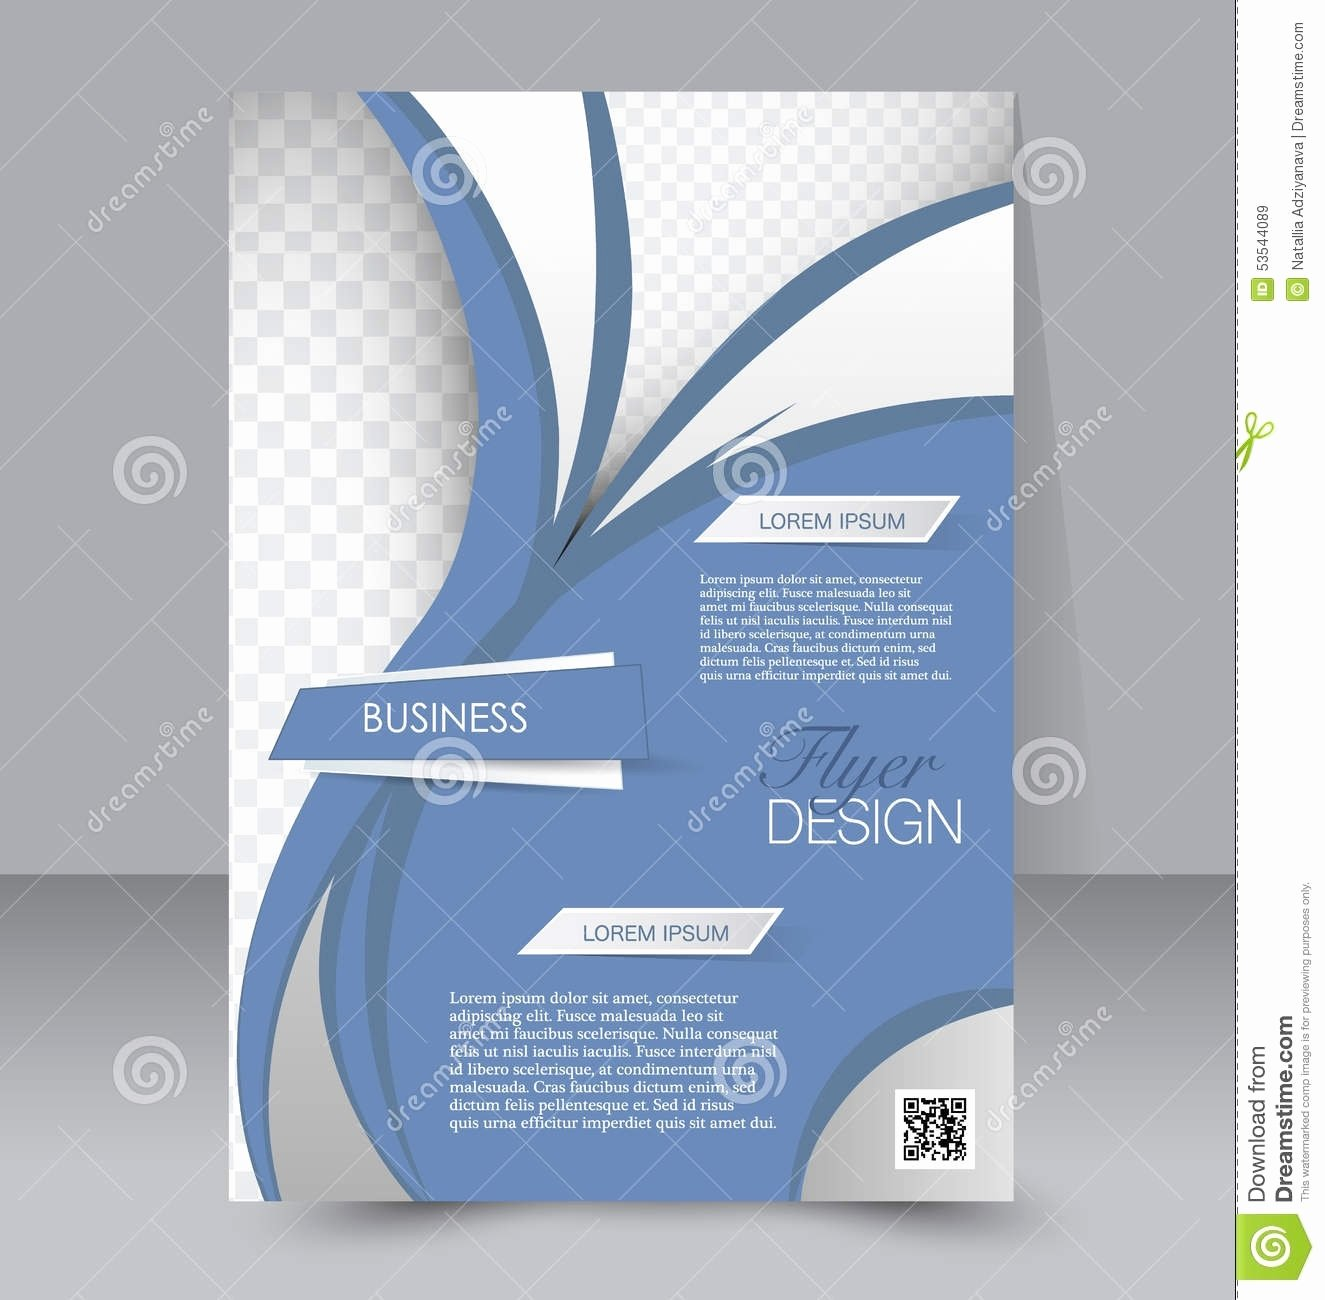 Free Editable Flyer Templates